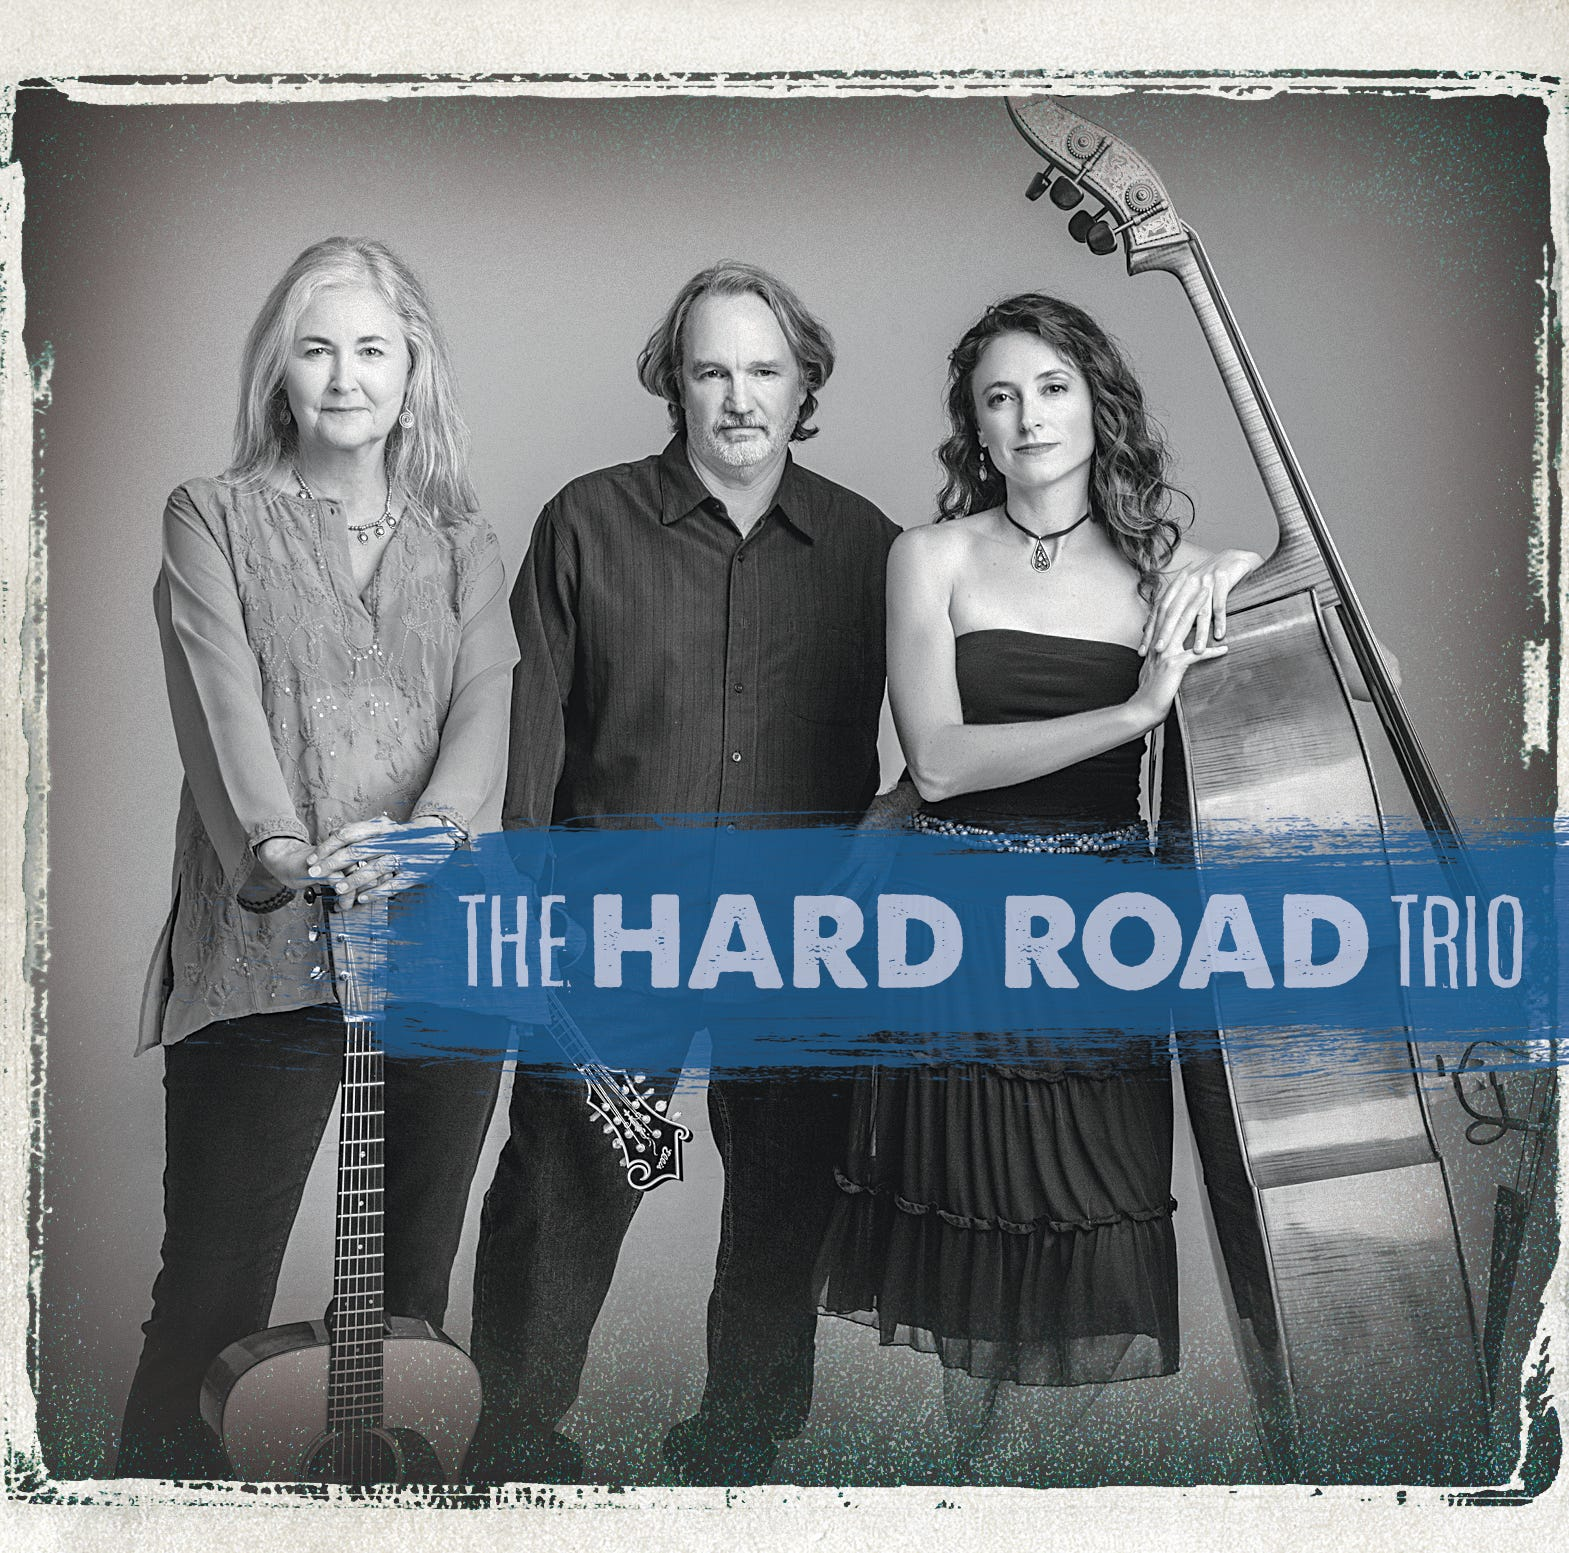 KRWG presents Hard Road Trio CD release and benefit concert March 29